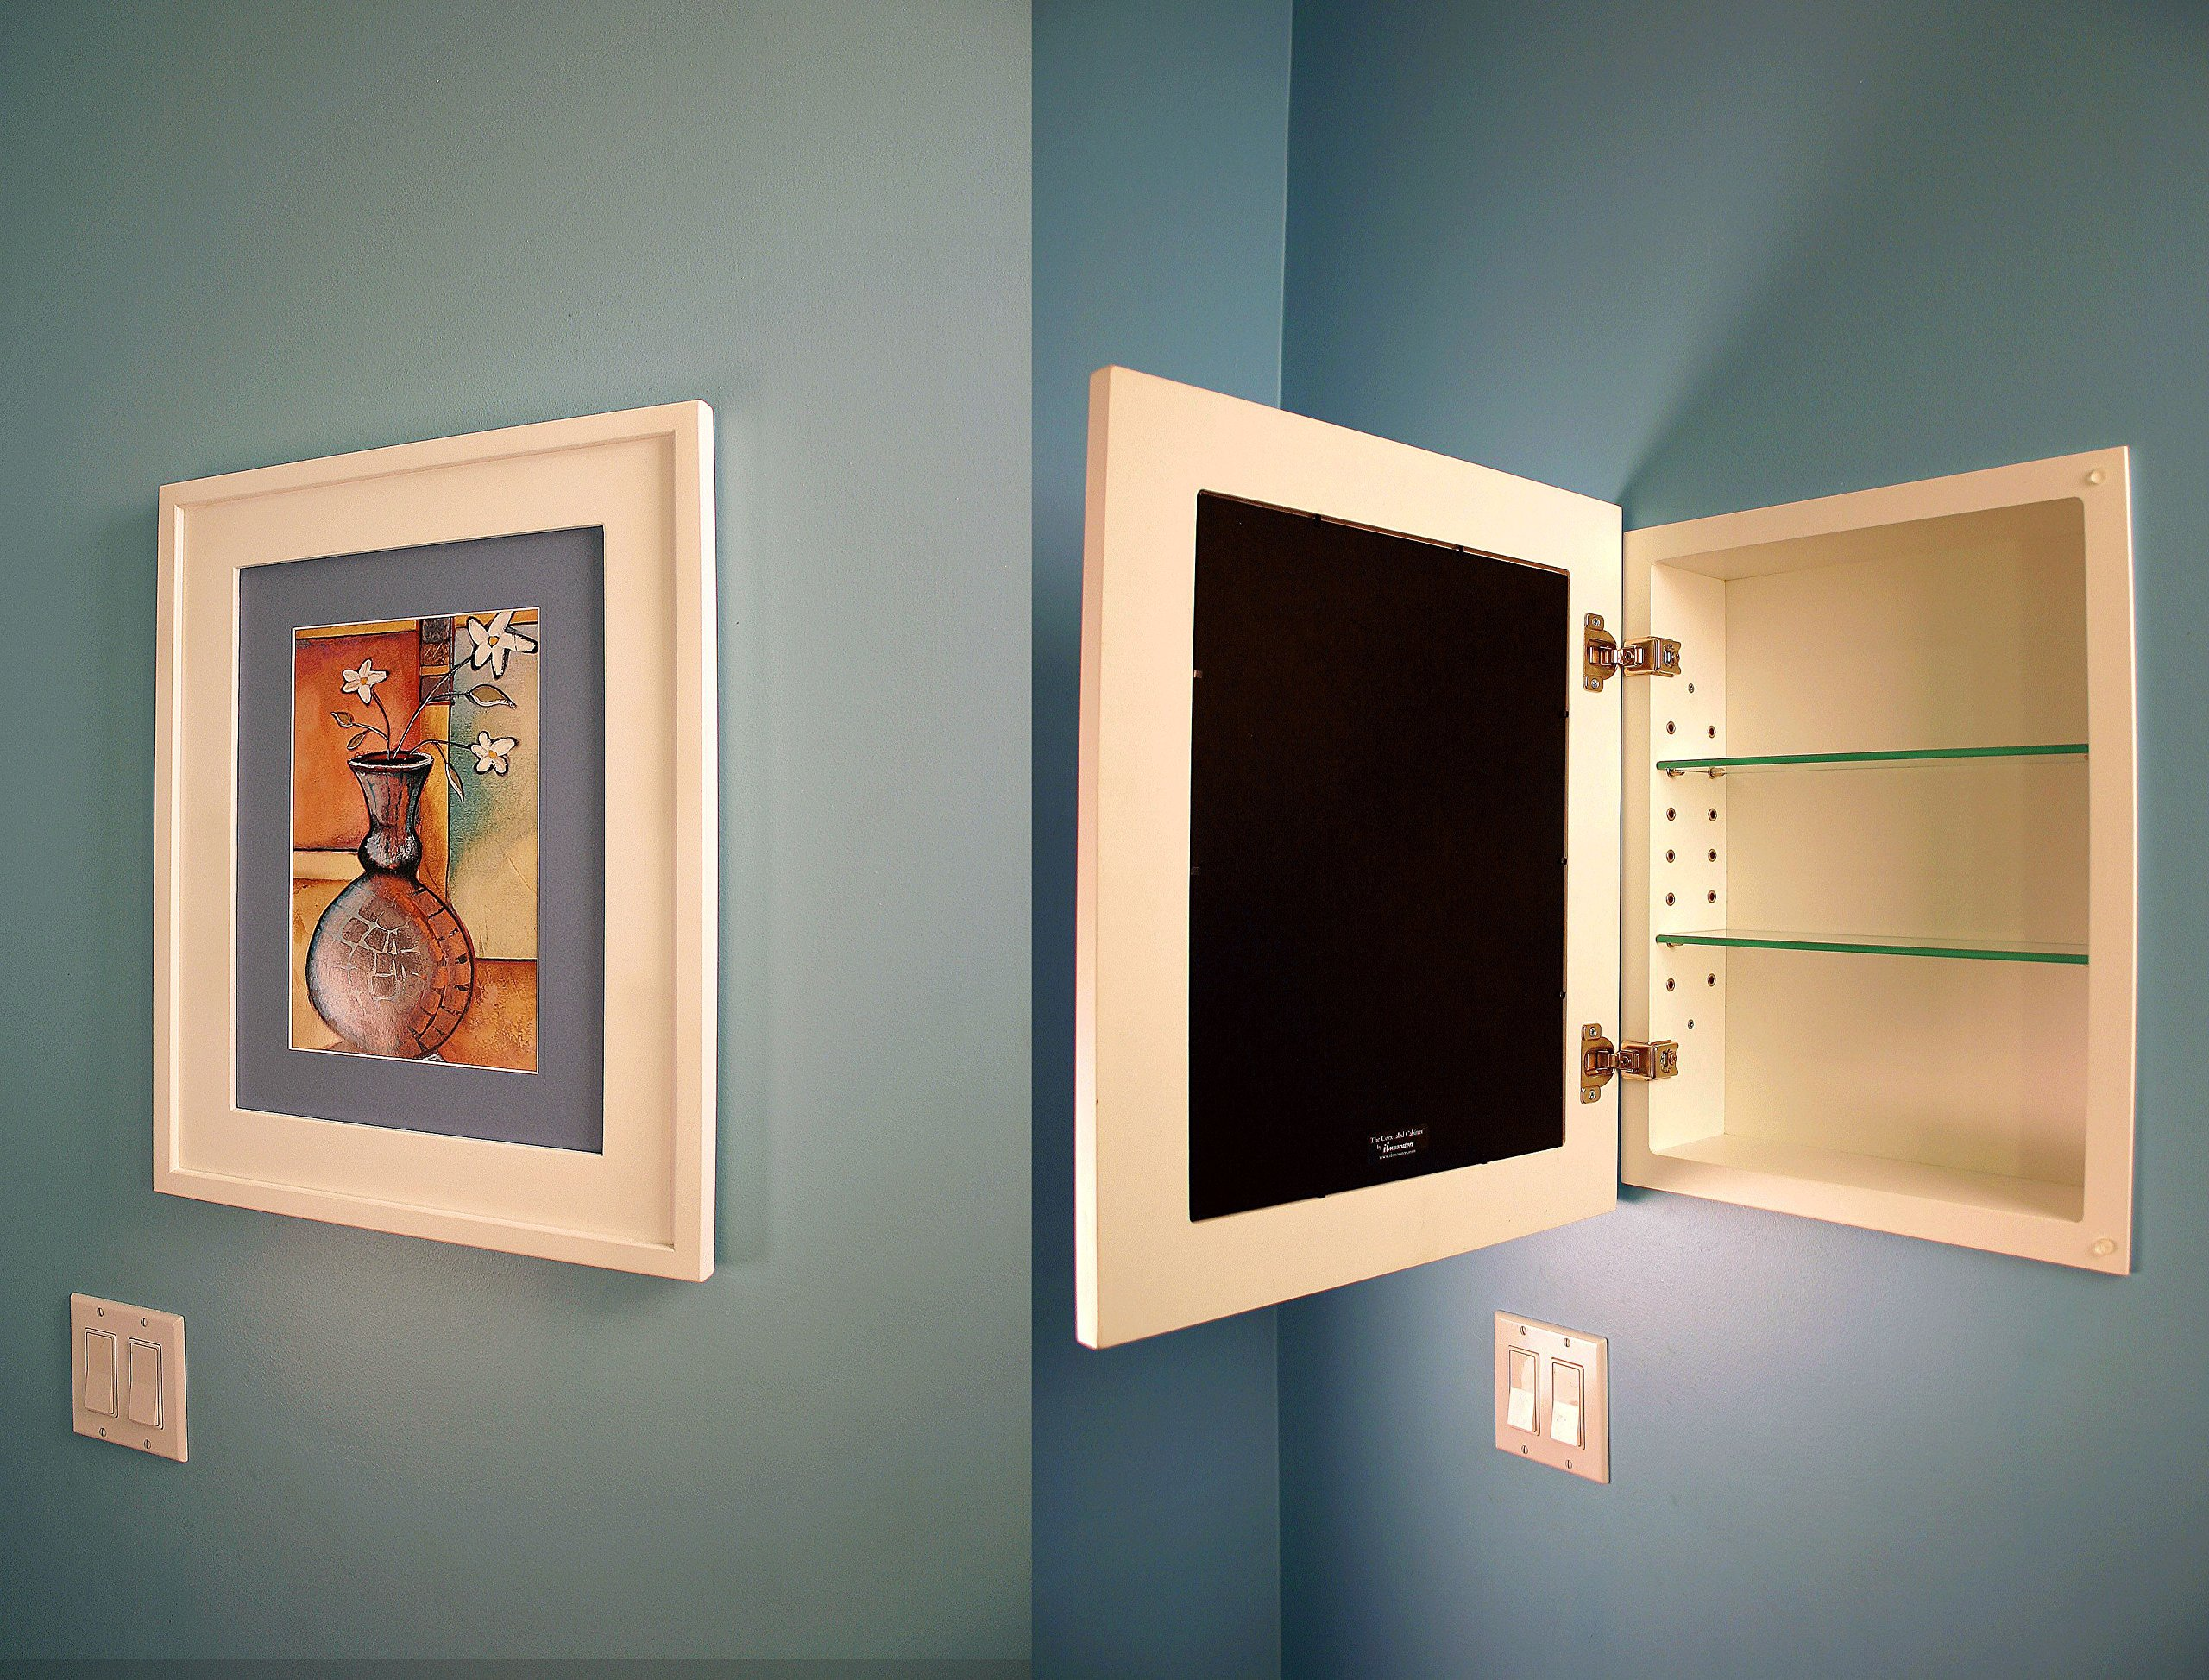 14x18 Black Concealed Medicine Cabinet (Large), a Recessed Mirrorless Medicine Cabinet with a Picture Frame Door